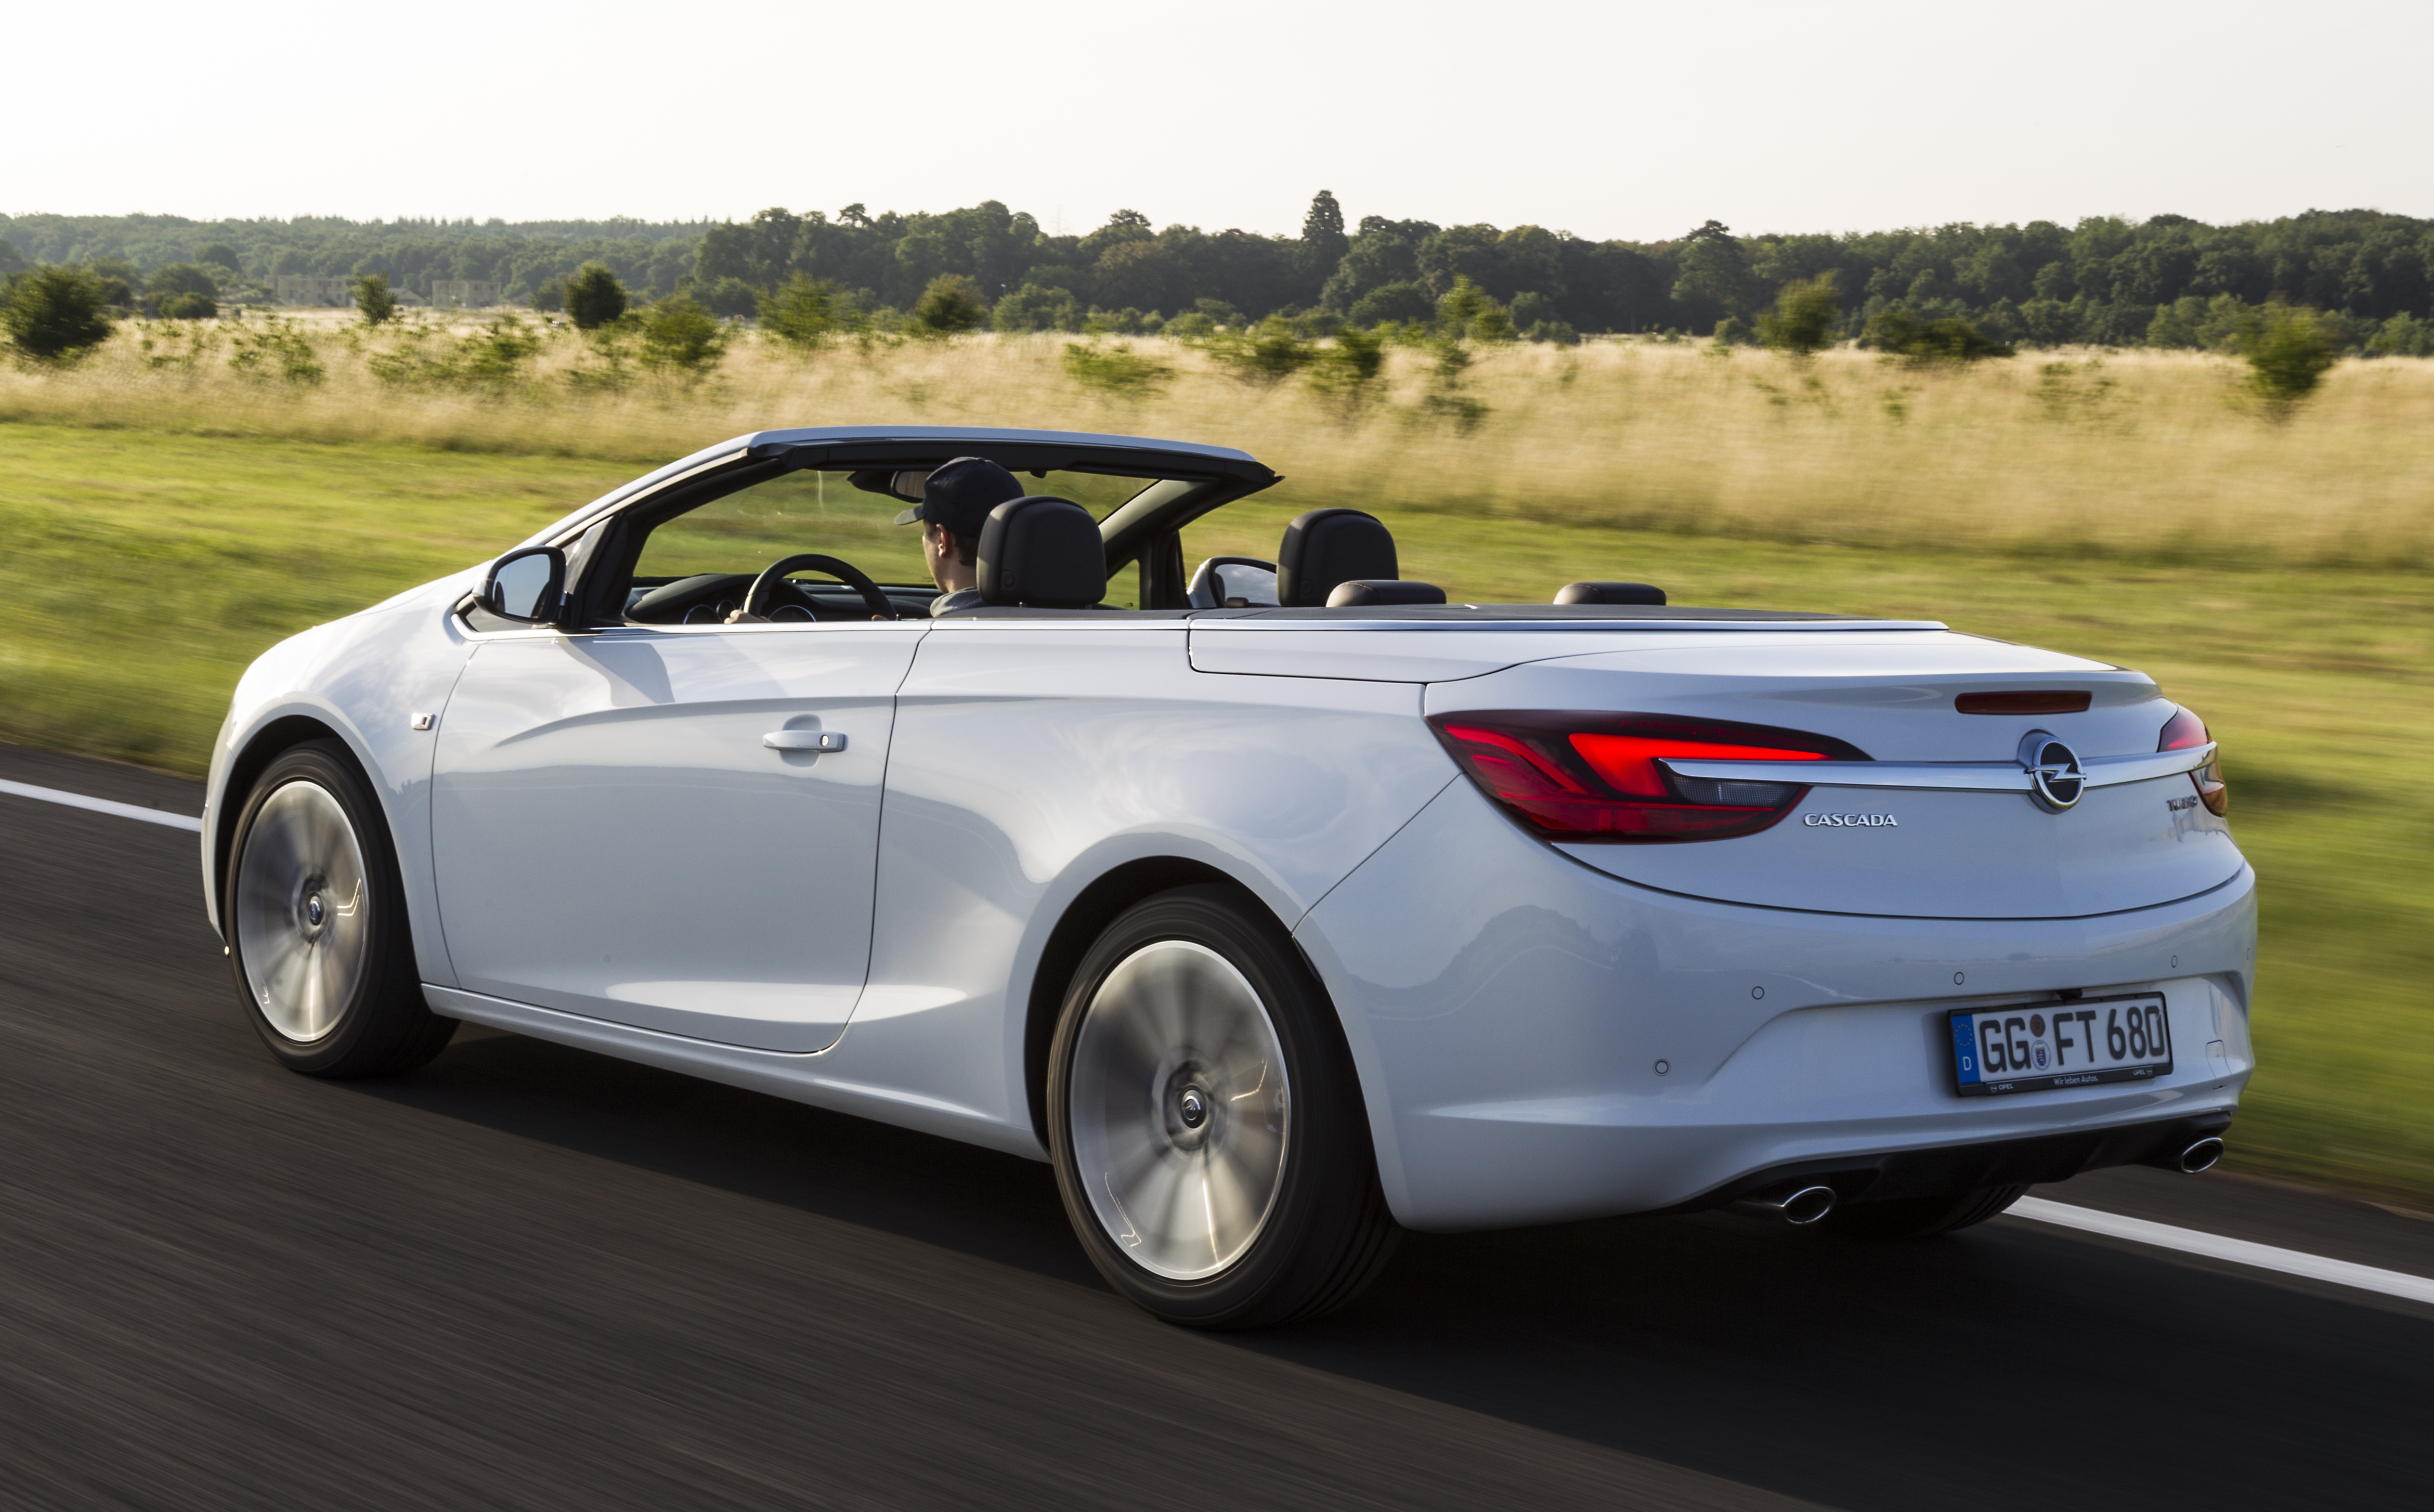 The Opel Cascada will be rebadged in the U.S. as the Buick Cascada convertible